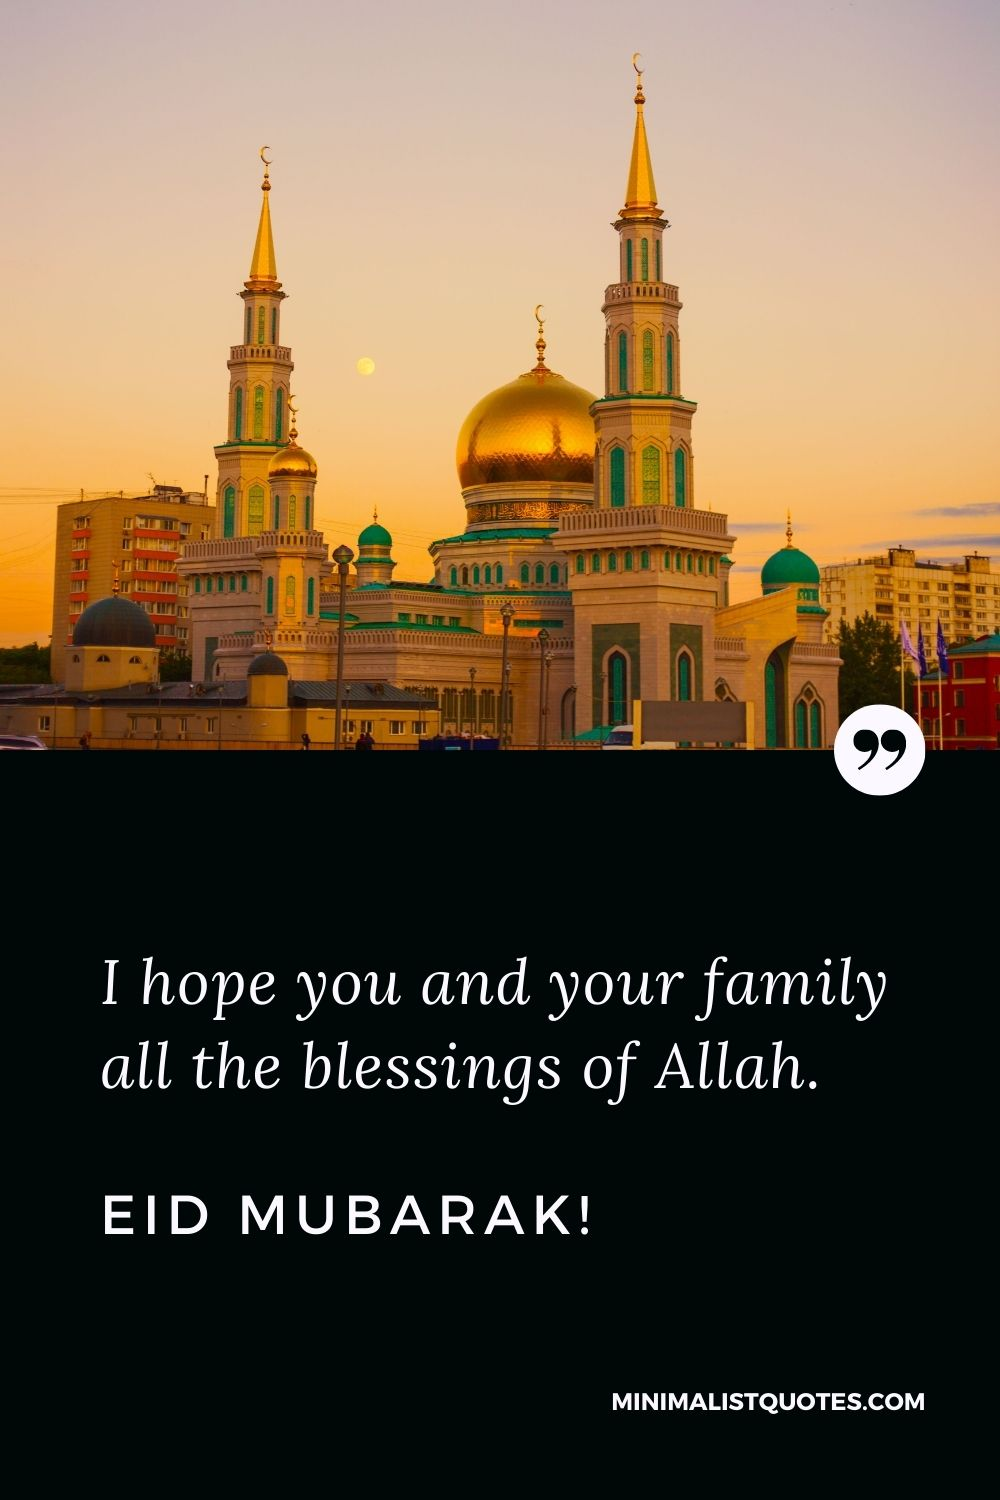 Eid al-Fitr Quote, Wish & Message With Image: I hope you and your family all the blessings of Allah. Eid Mubarak!